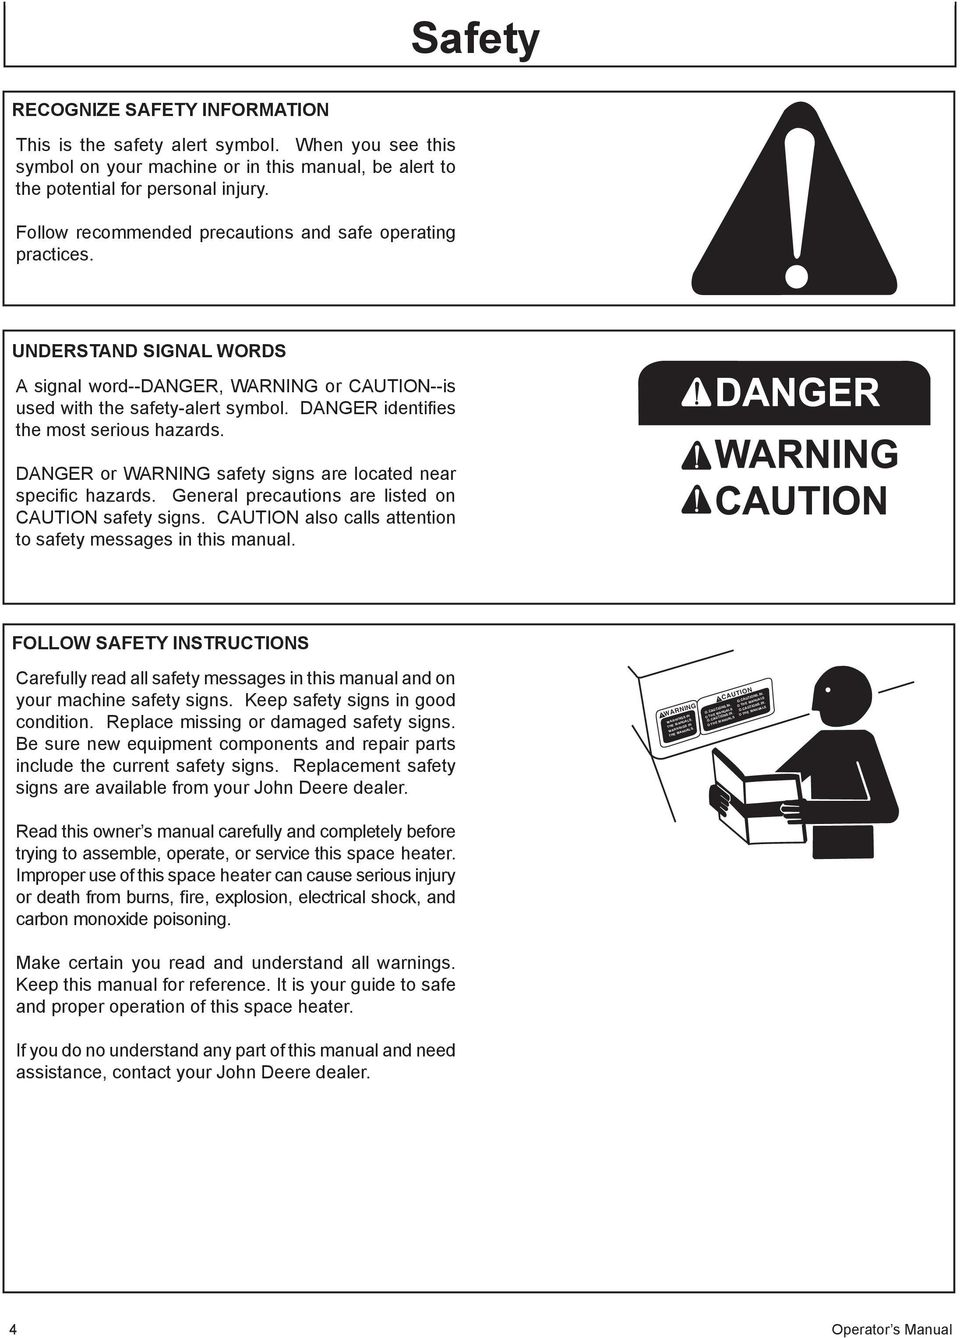 DANGER identifies the most serious hazards. DANGER or WARNING safety signs are located near specific hazards. General precautions are listed on CAUTION safety signs.